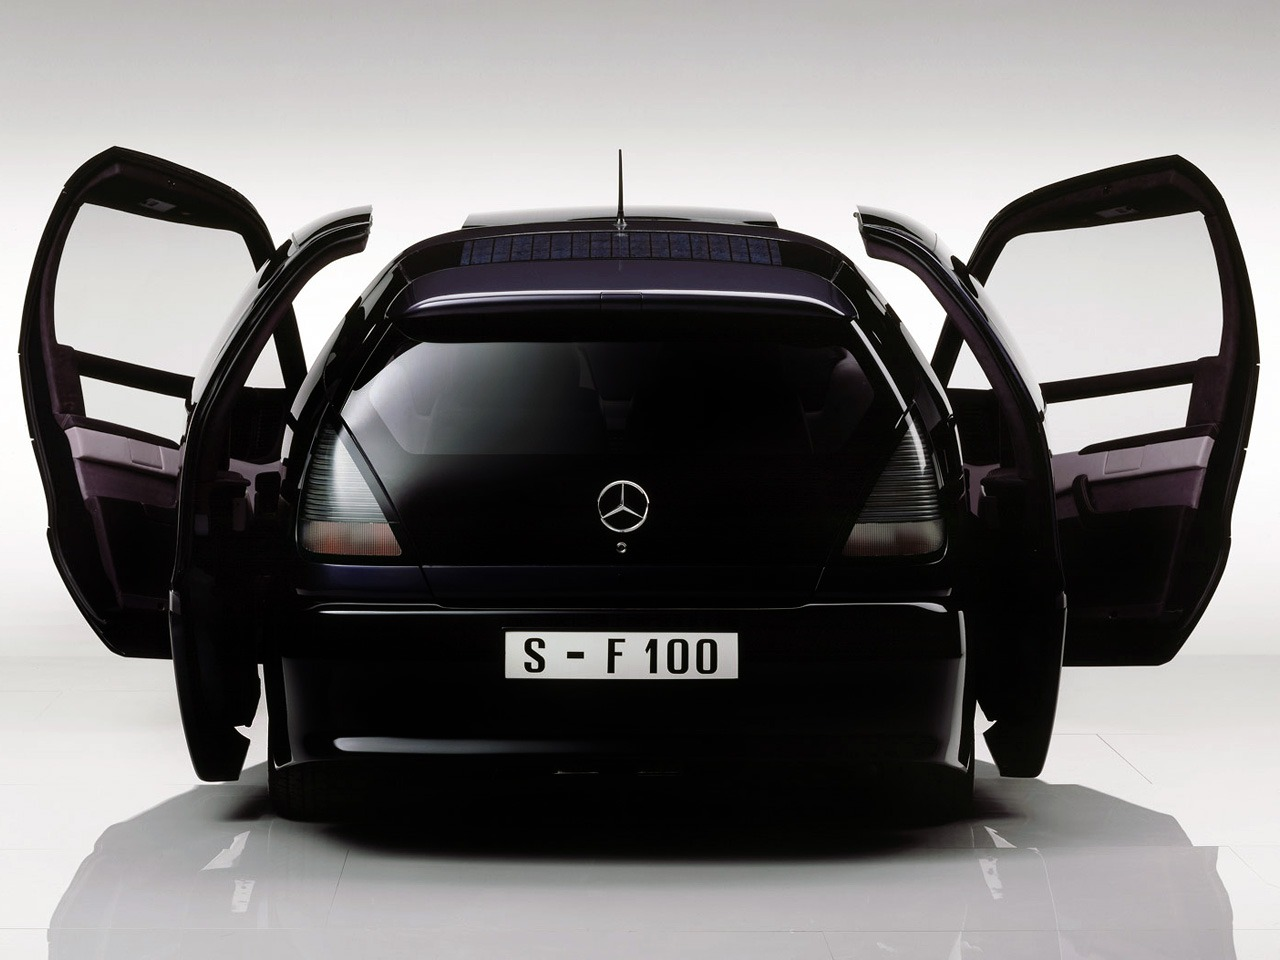 Motorcycle Dealer Near Me >> Mercedes-Benz F100 Concept (1991) - Old Concept Cars